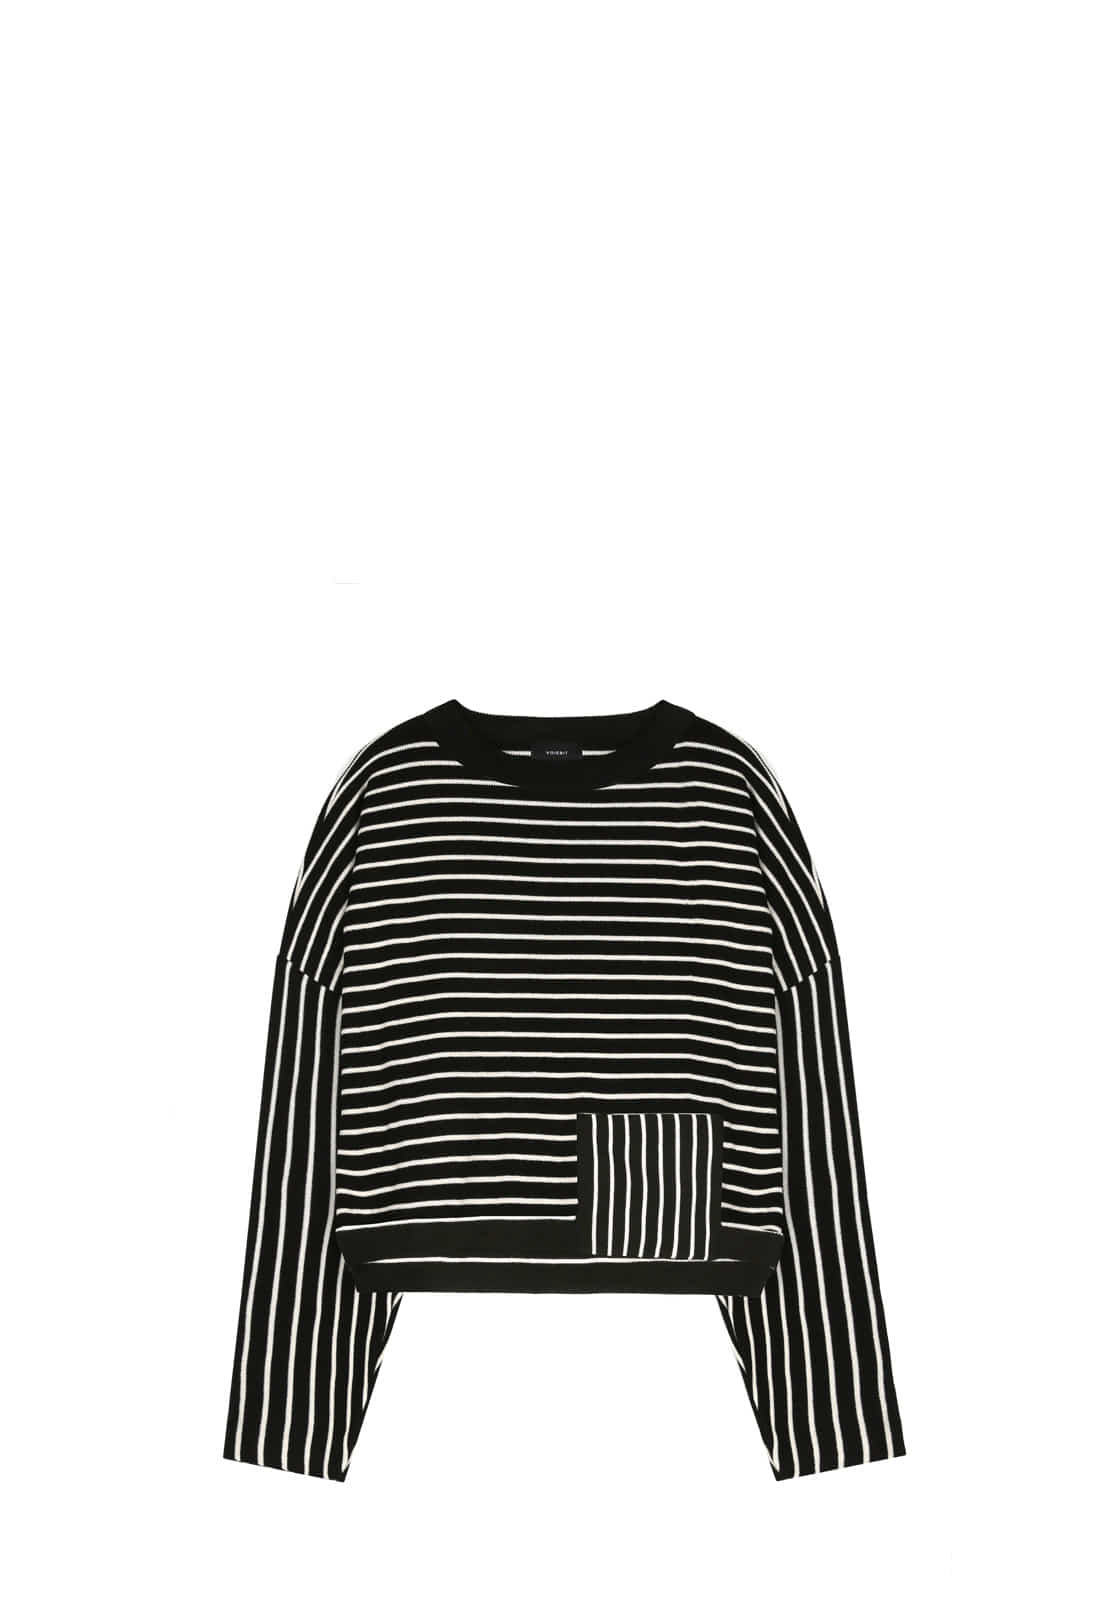 V543 STRIPE CROP KNIT  BLACK